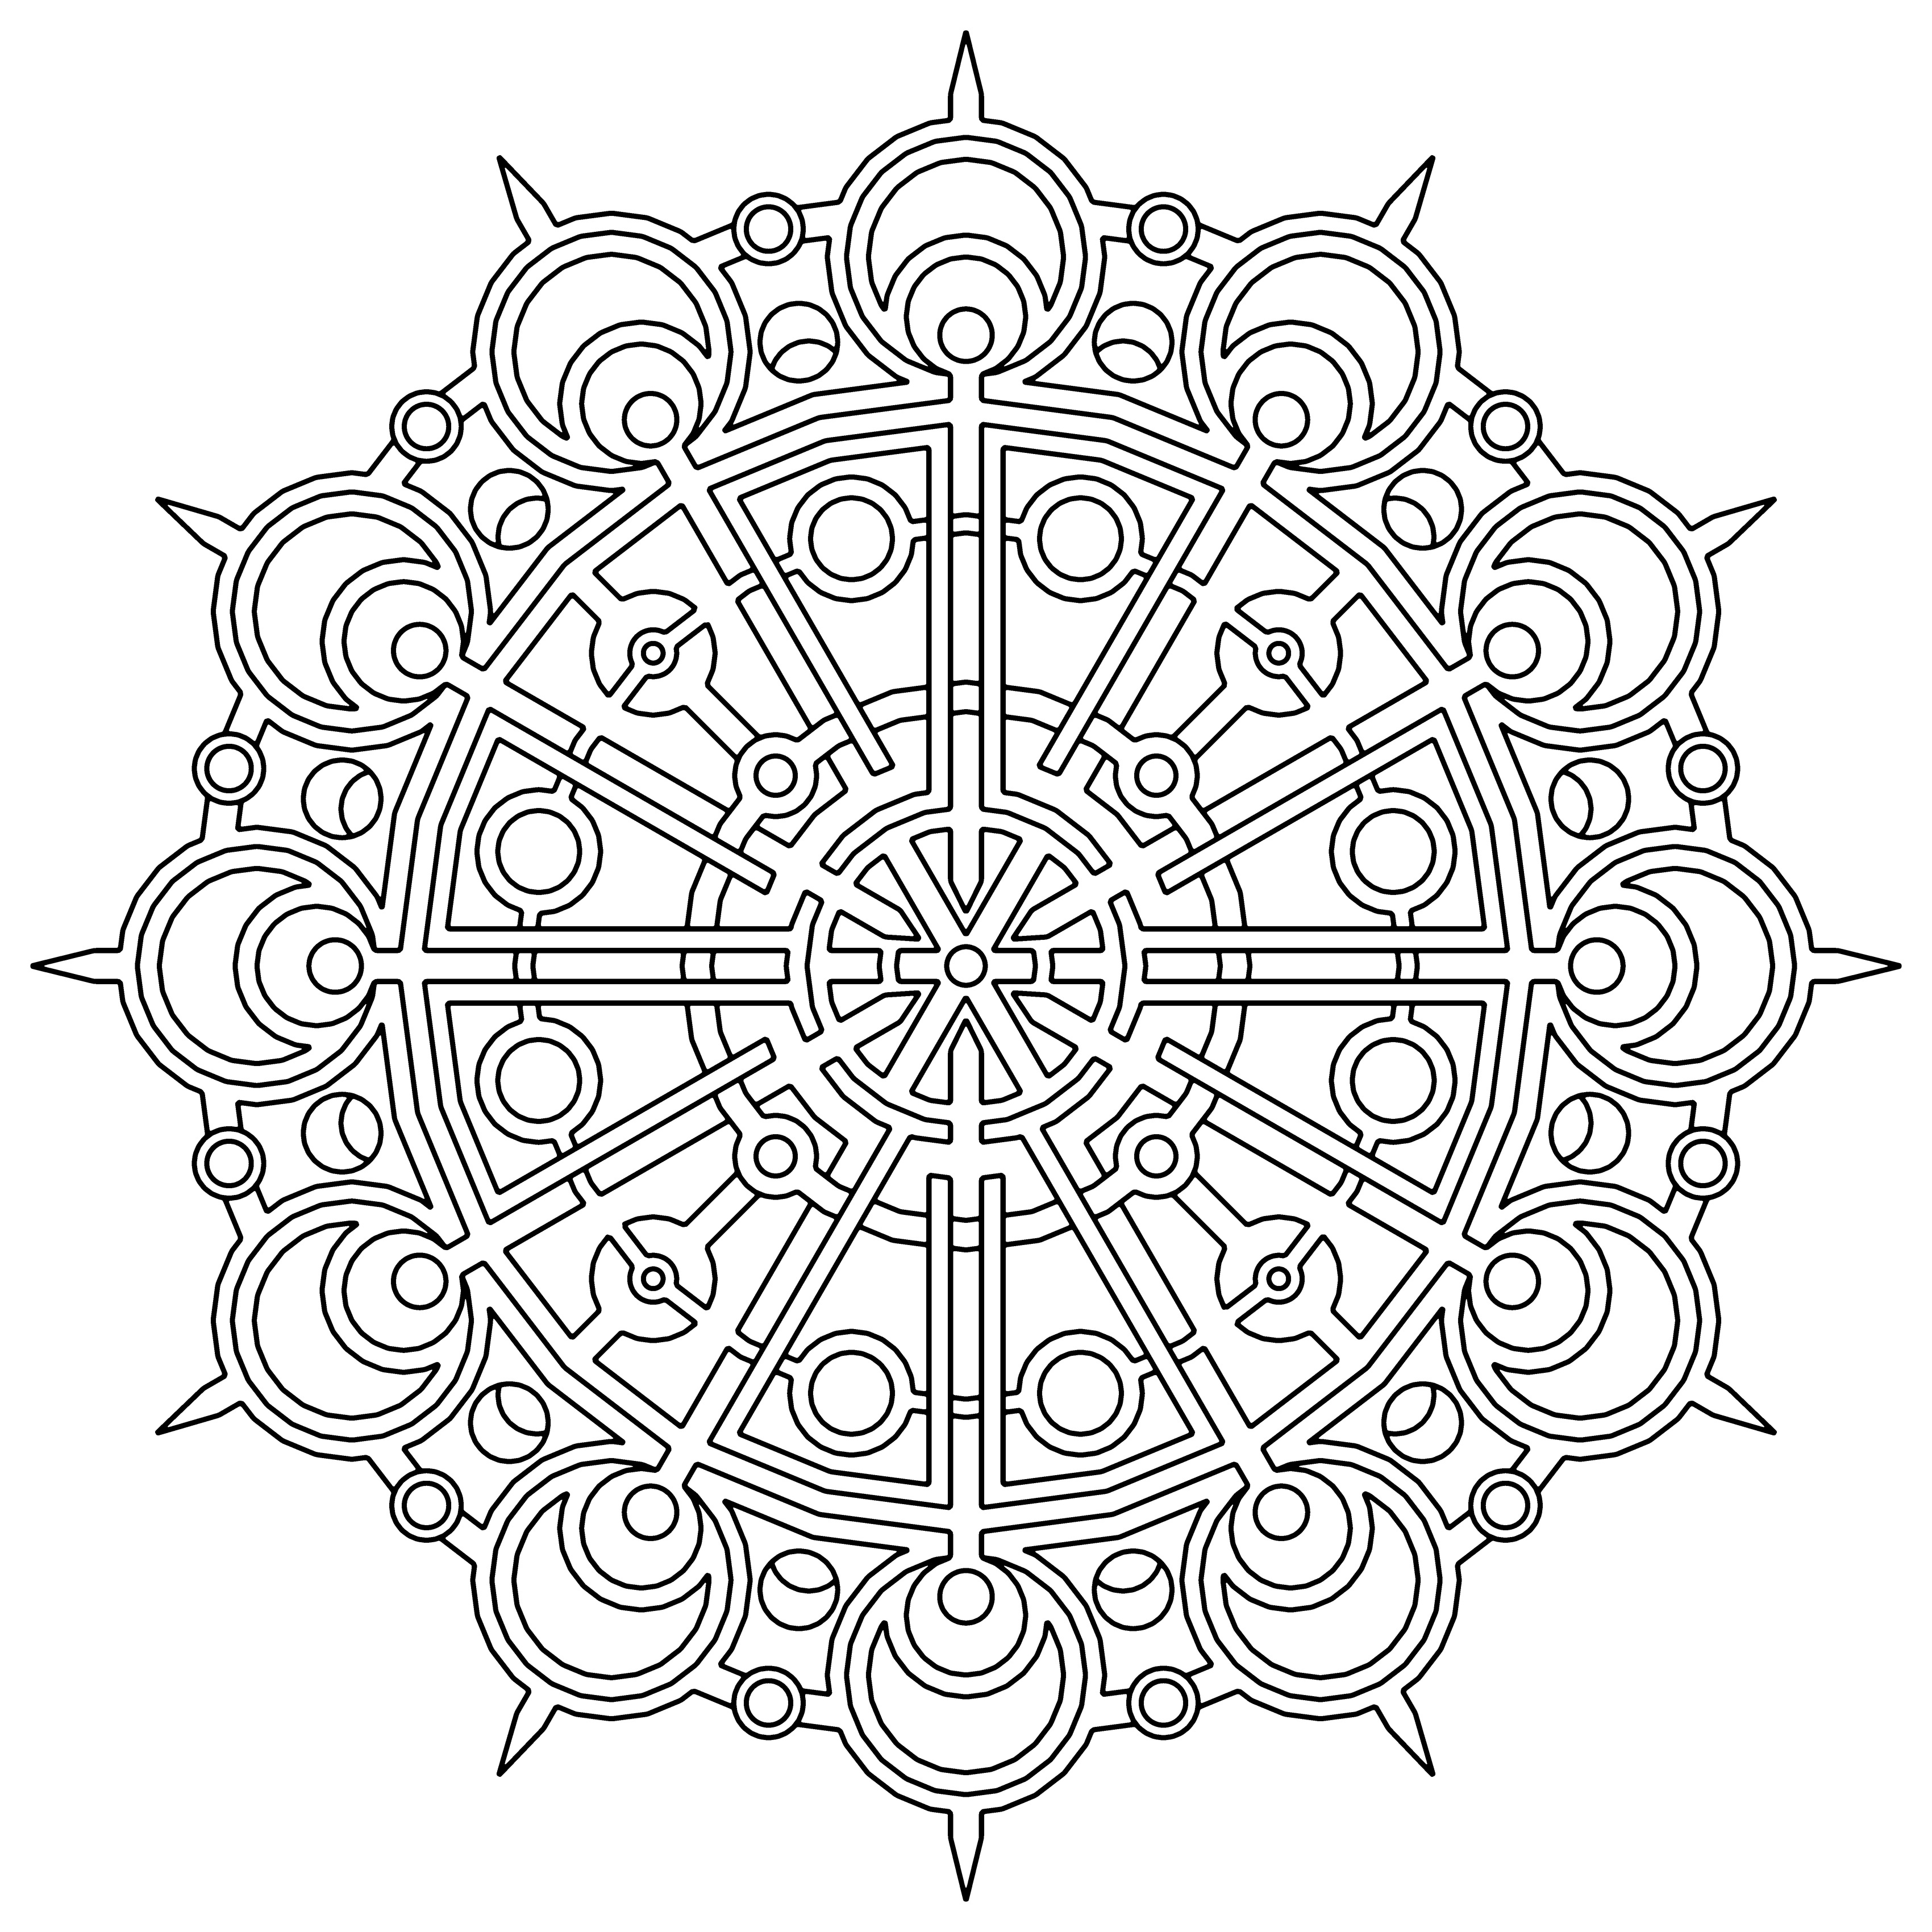 3400x3400 Coloring Paper Luxury Free Printable Geometric Coloring Pages